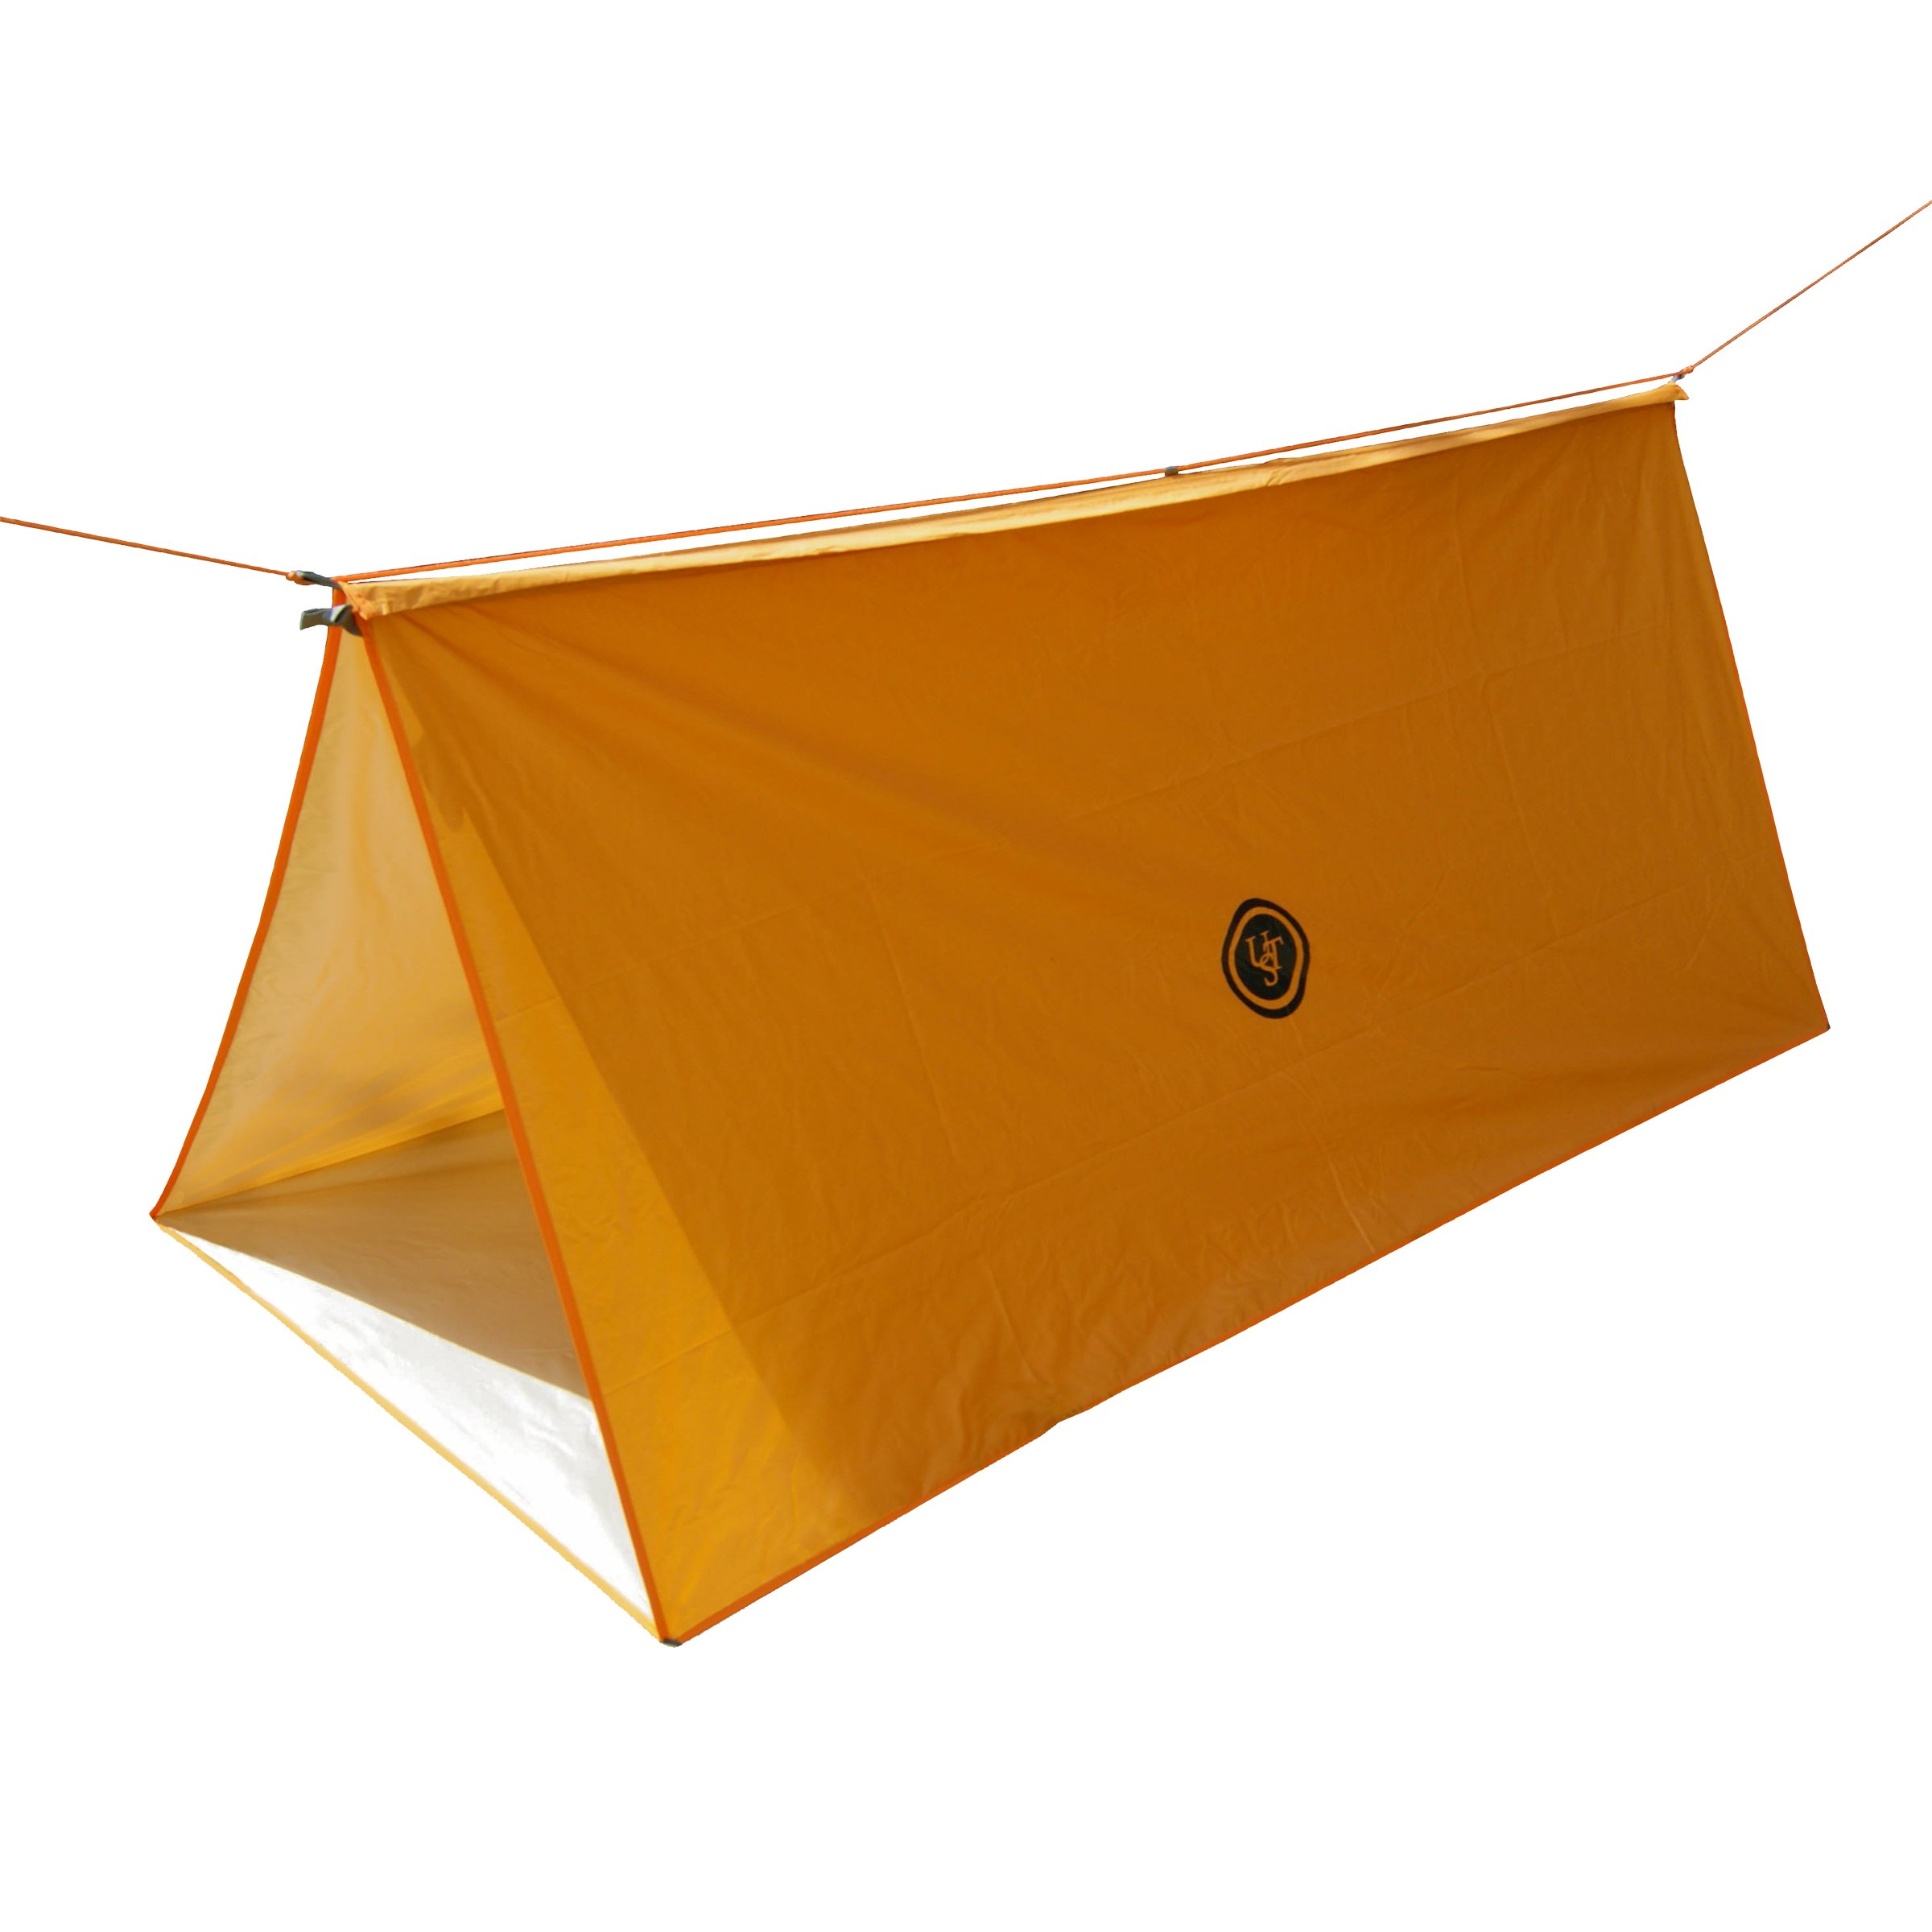 UST Tube Tarp and Camping Shelter with Compact, Multifunctional Use and Reversible and Flame Retardant Construction for Emergency, Hiking, Camping, Backpacking and Outdoor Survival by UST